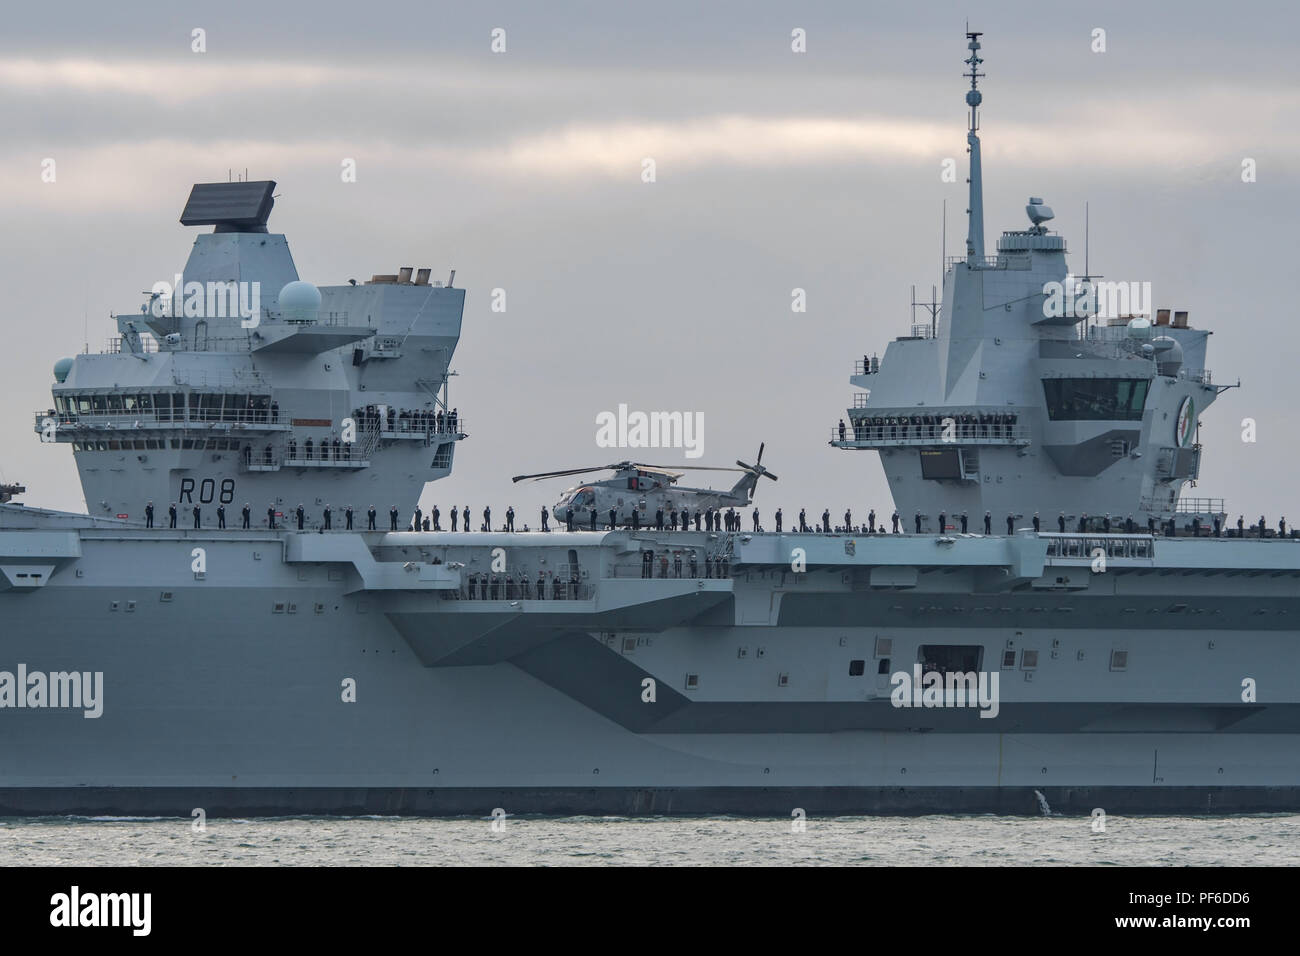 A close up of the twin islands on the Royal Navy aircraft carrier HMS Queen Elizabeth as the warship departs the UK for the United States on 18/8/18. - Stock Image